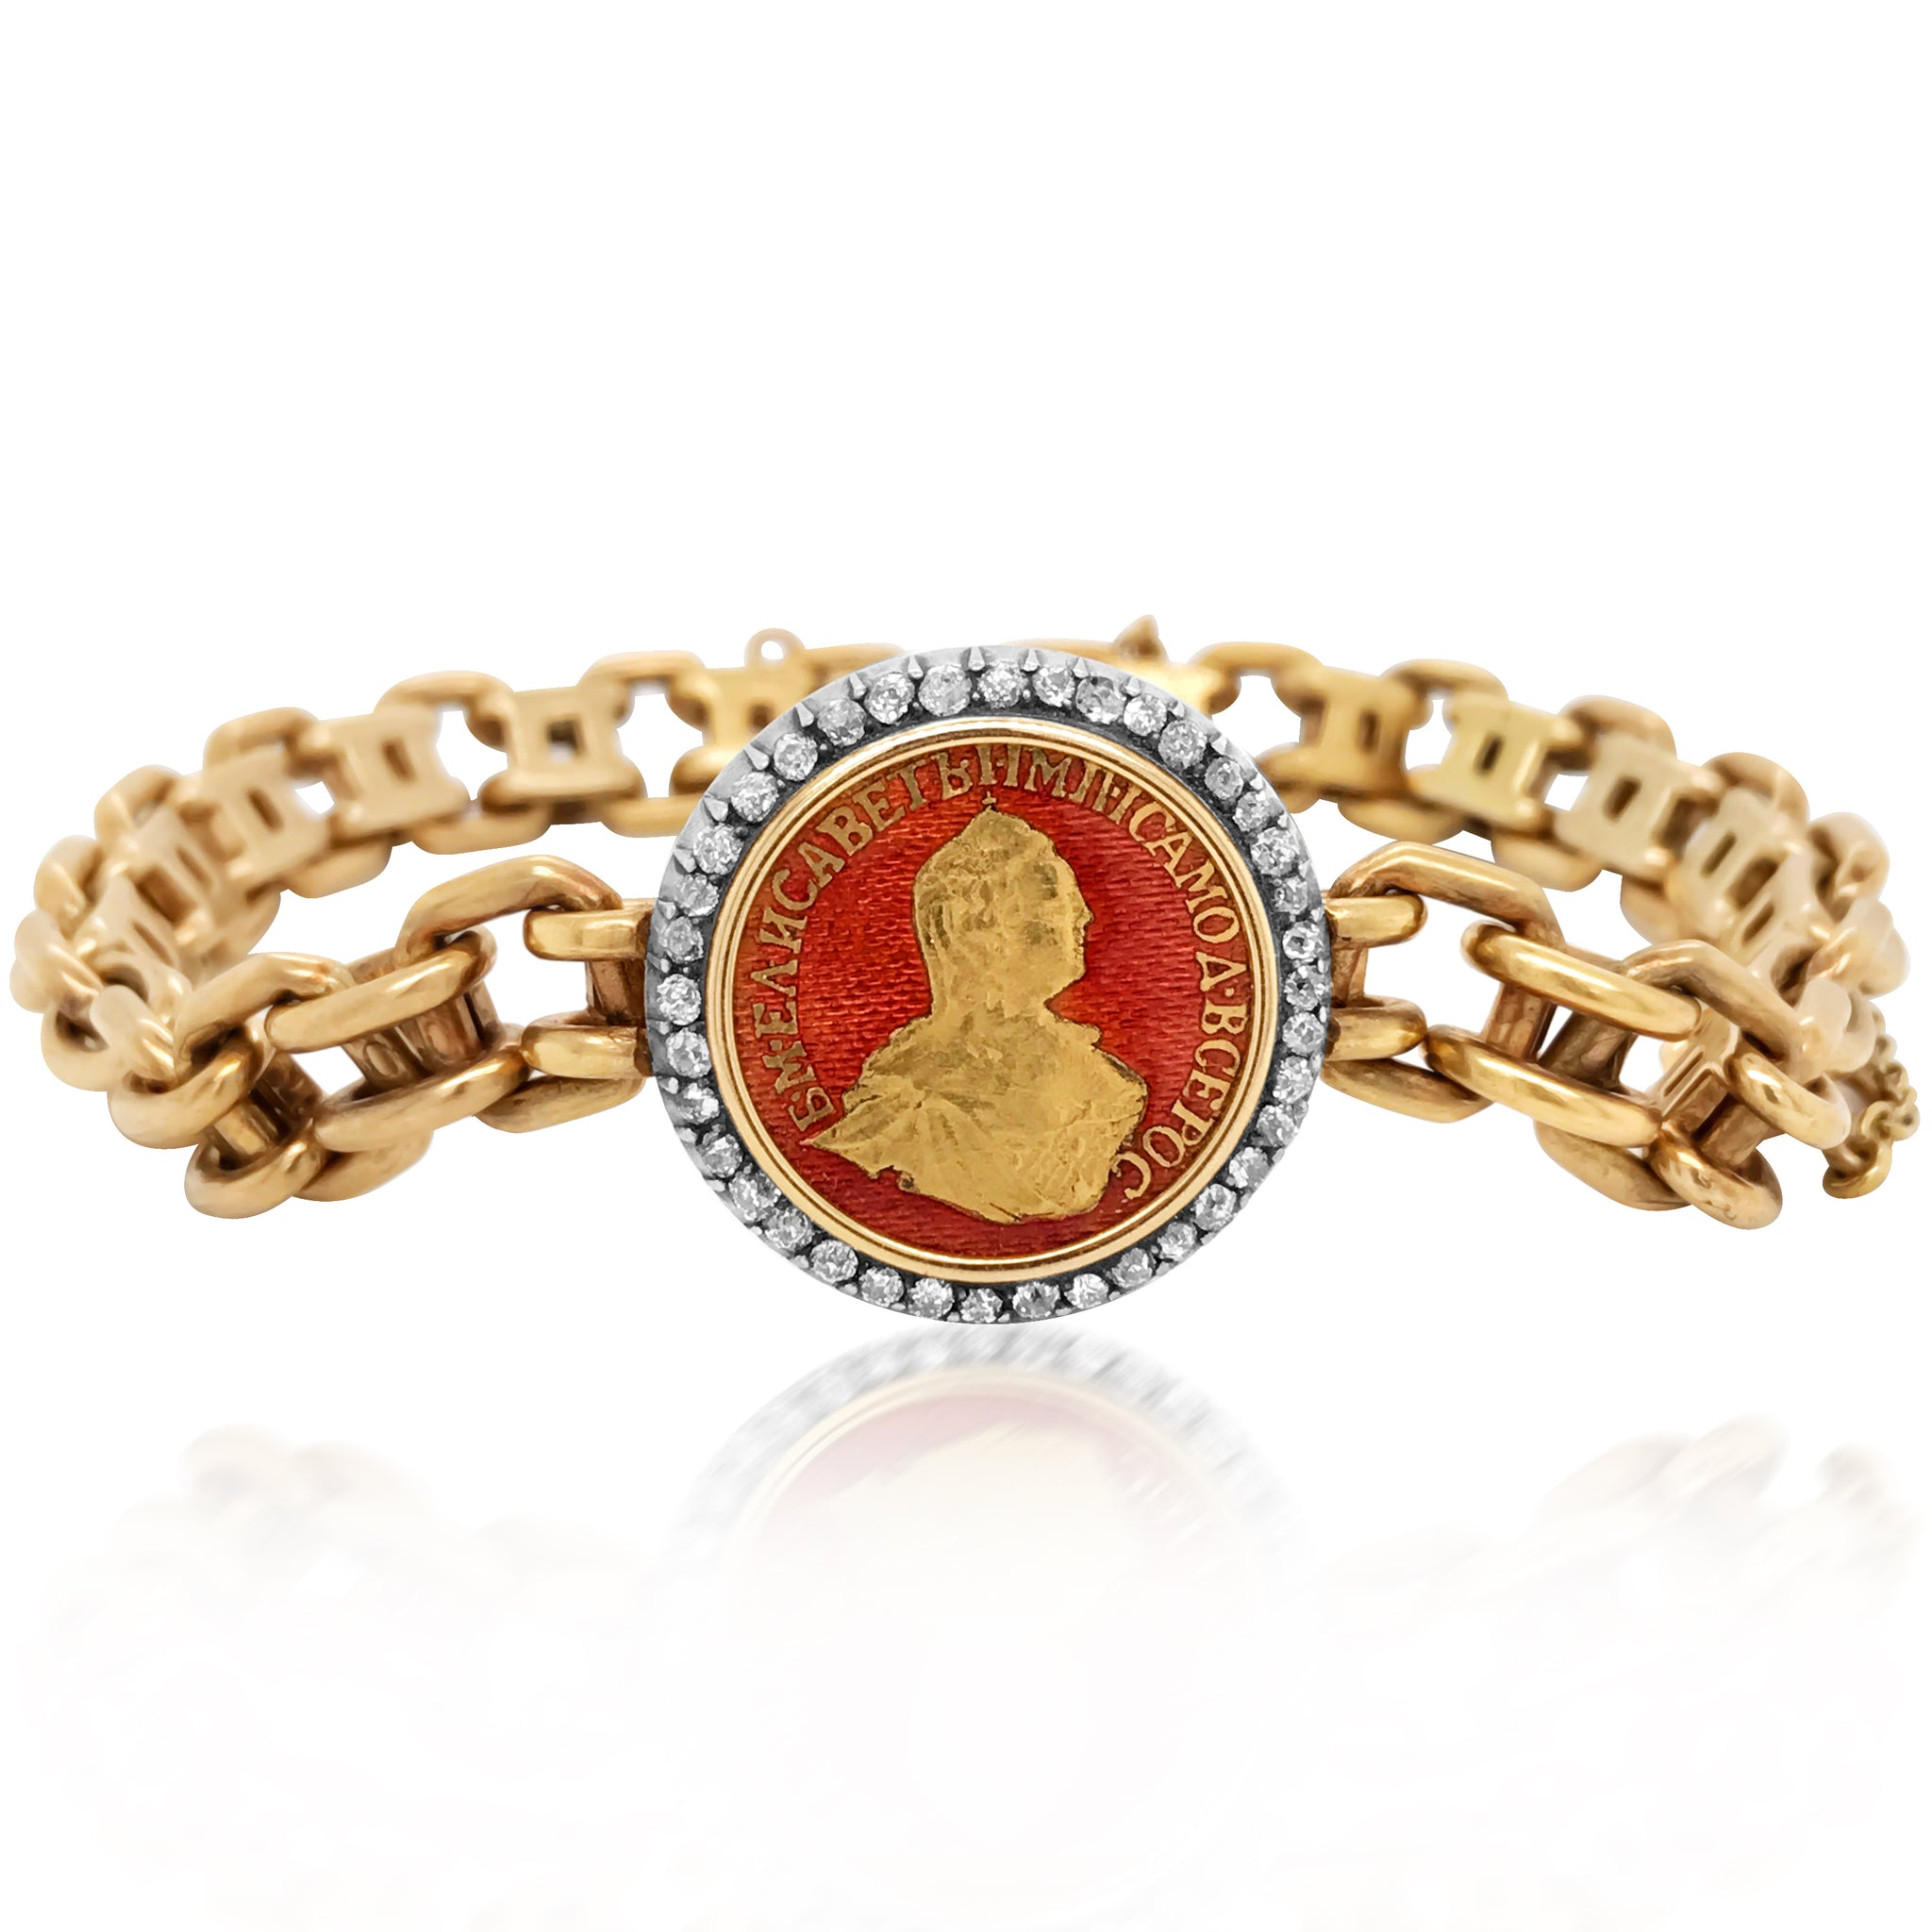 Faberge, Enamel Diamond Gold Coin Bracelet - Lueur Jewelry